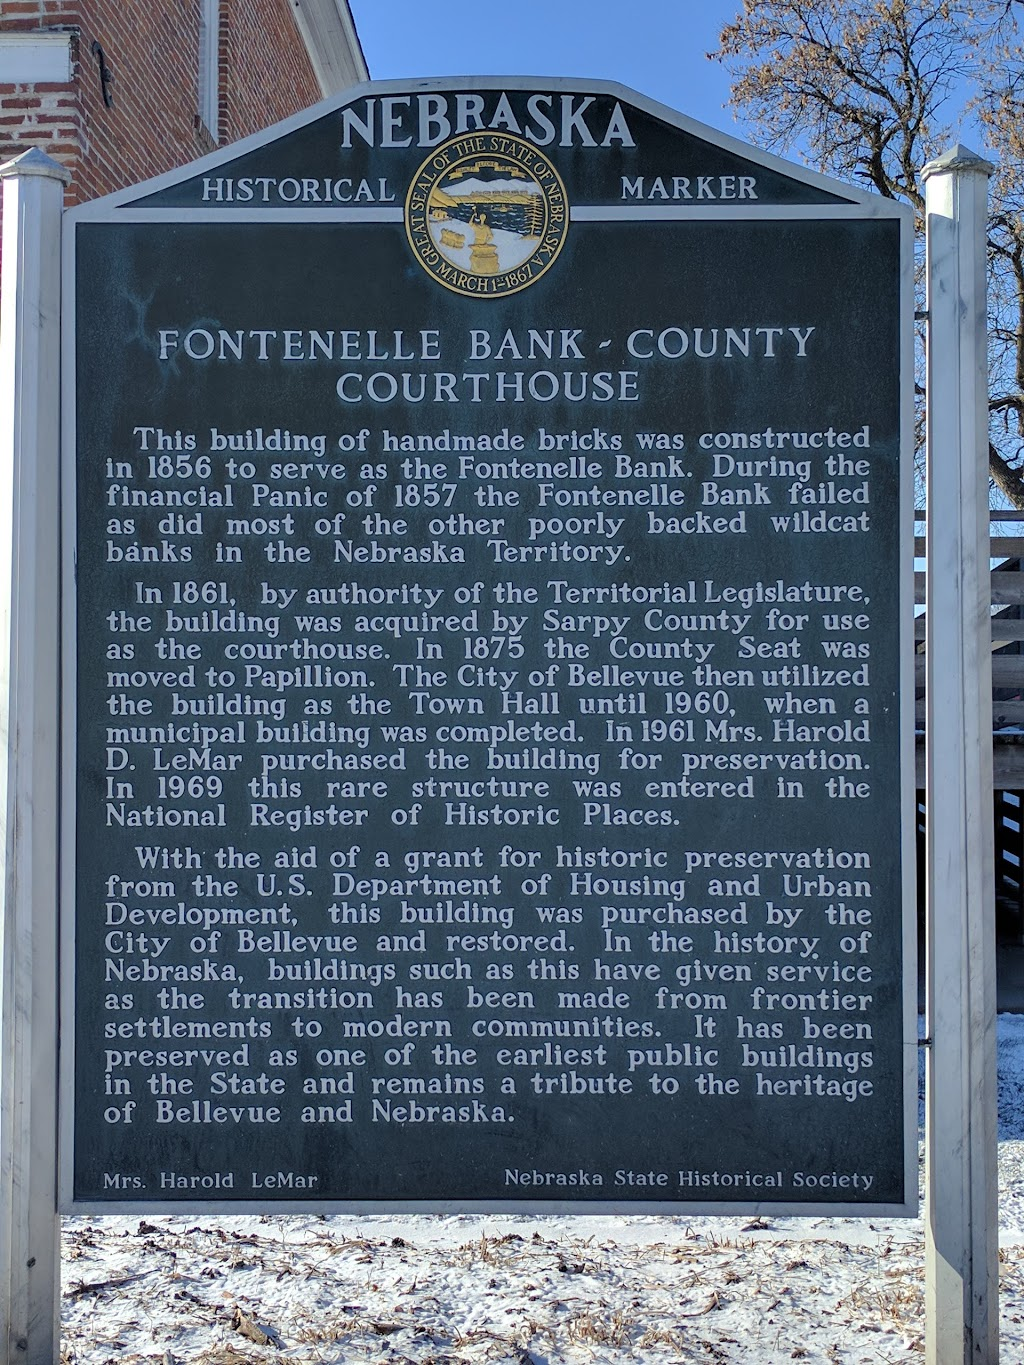 Fontenelle Bank - County Courthouse Historical Marker - atm    Photo 3 of 8   Address: Bellevue, NE 68005, USA   Phone: (402) 292-1880